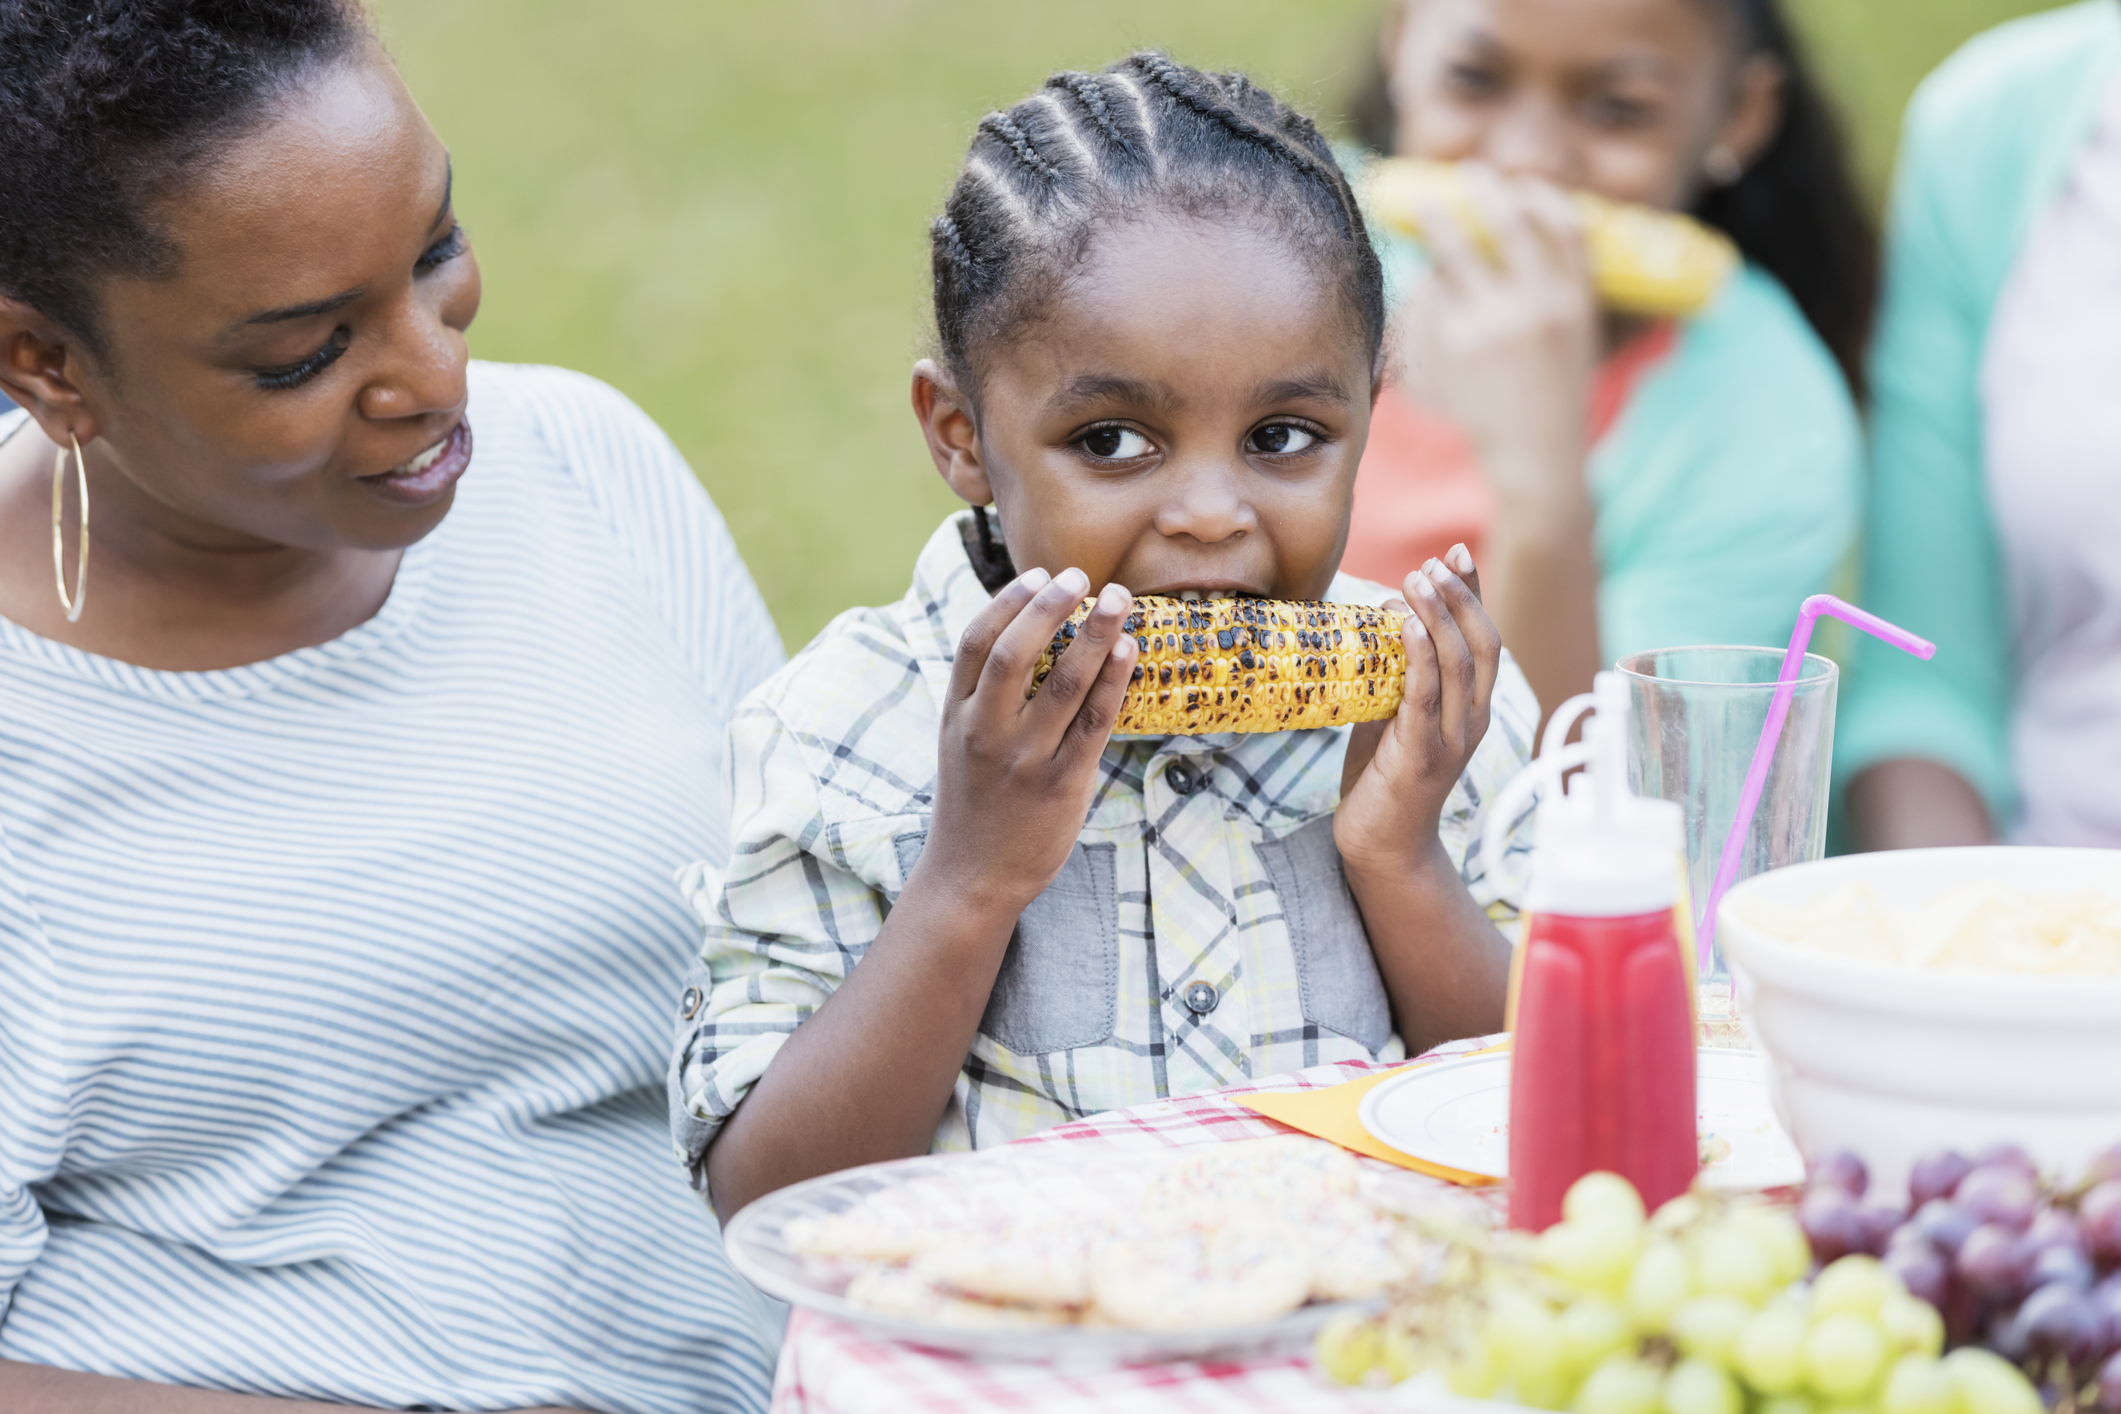 A little 3 year old African-American boy sitting on his mother's lap at a backyard cookout, eating corn on the cob.